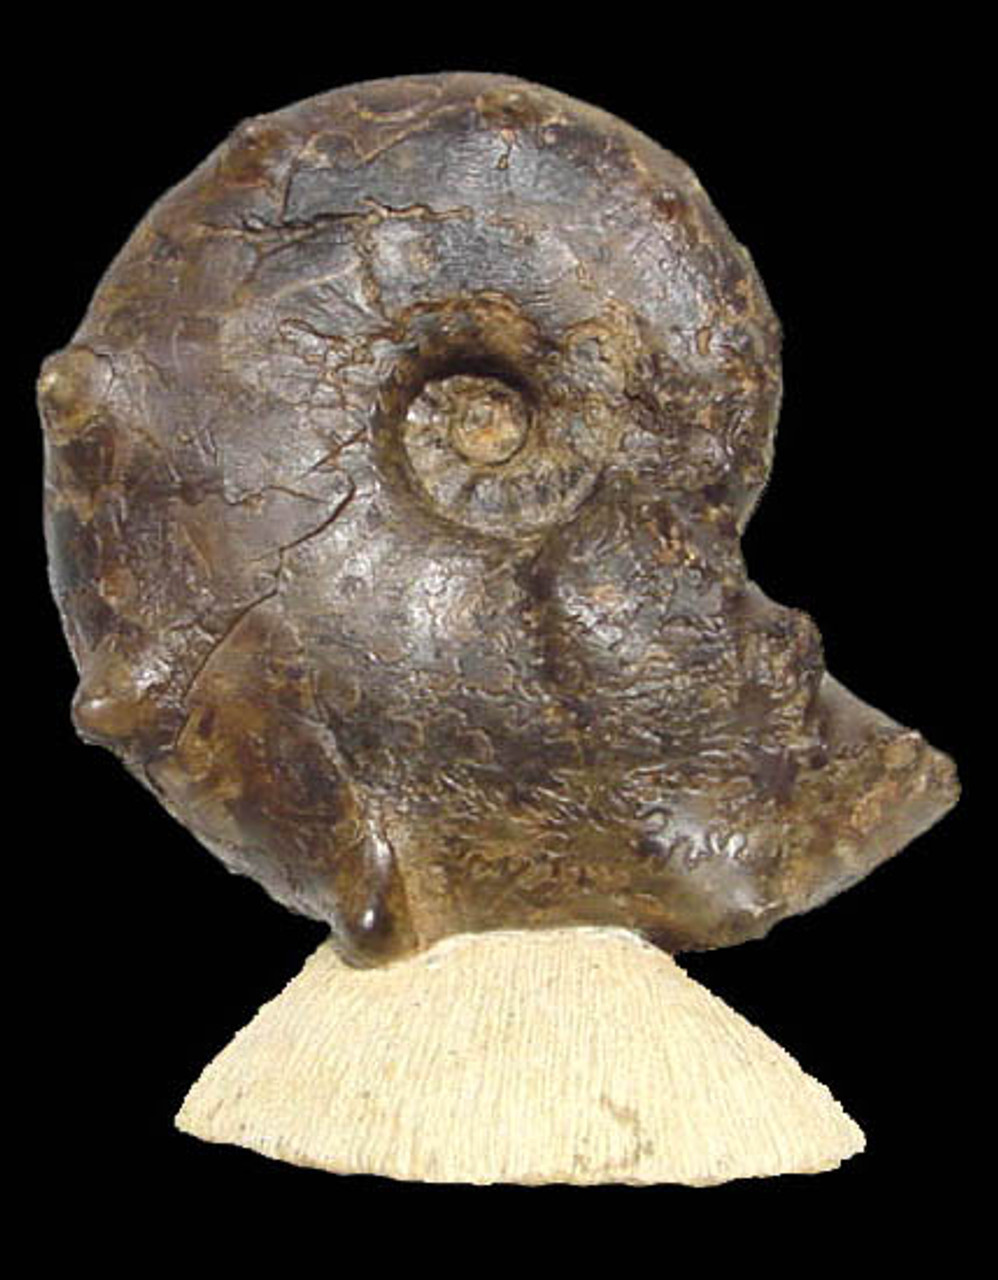 UNIQUE HOUSE-WARMING GIFT FOSSIL AMMONITE SEA LIFE FROM THE DINOSAUR DAYS  *AMX-135